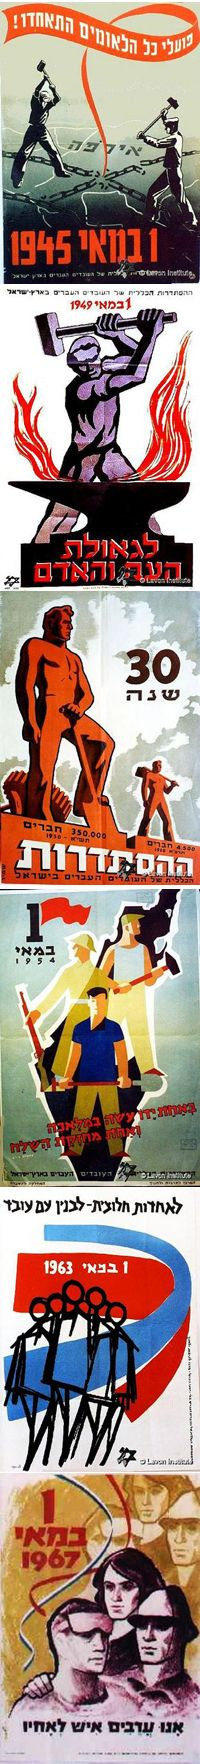 The Labor Movement in Israel website focuses on the history of the Movement from the beginning of Zionist settlement at the end of the 19th century up to 1977. The site also includes a wonderful gallery of Labor Movement posters....